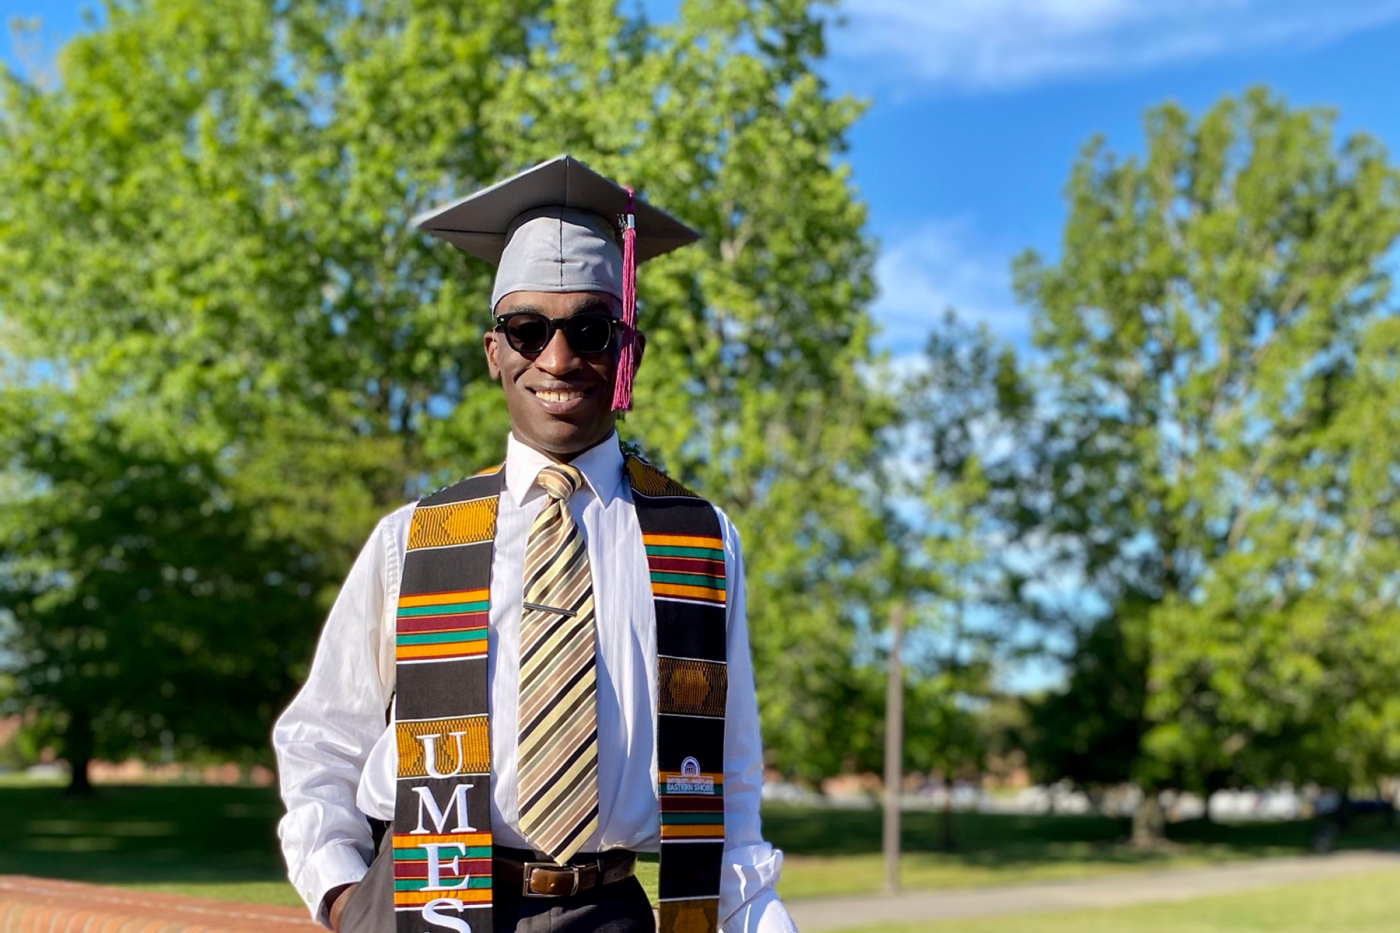 Langston Frazier has already put his PGA education to use as an assistant golf professional at the University of Maryland Golf Course, the same school where he's pursuing a graduate degree in broadcast journalism.